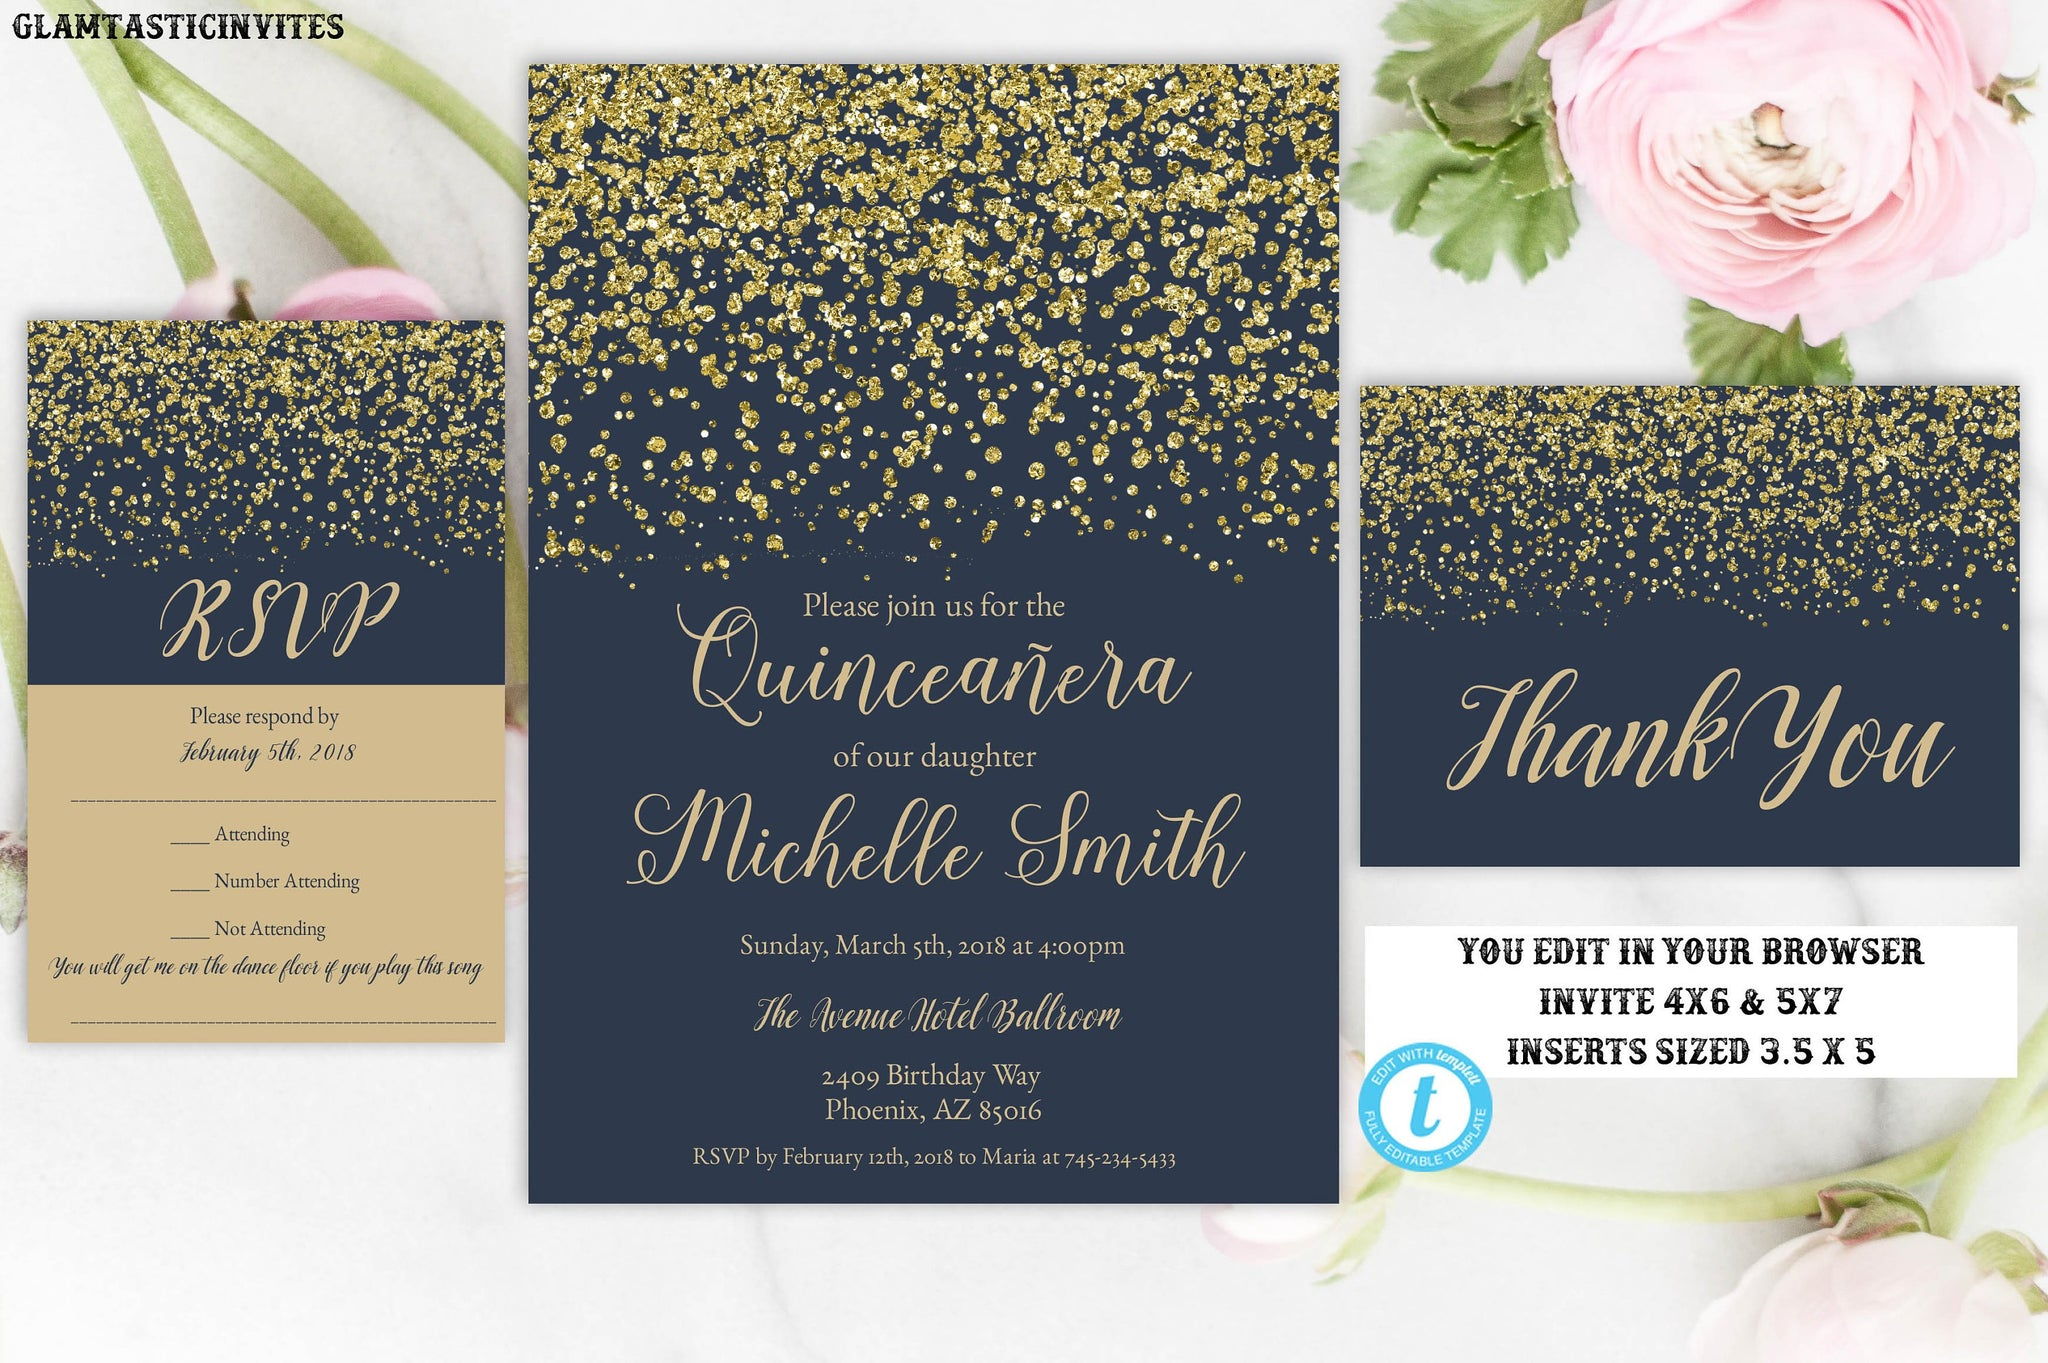 graphic regarding Printable Quinceanera Invitations referred to as Armed service Blue Gold Quinceañtechnology Invitation Template, Quinceañtechnology Invitation, Quinceañgeneration, Prompt Obtain, Editable, Printable, Adorable 15 Invite